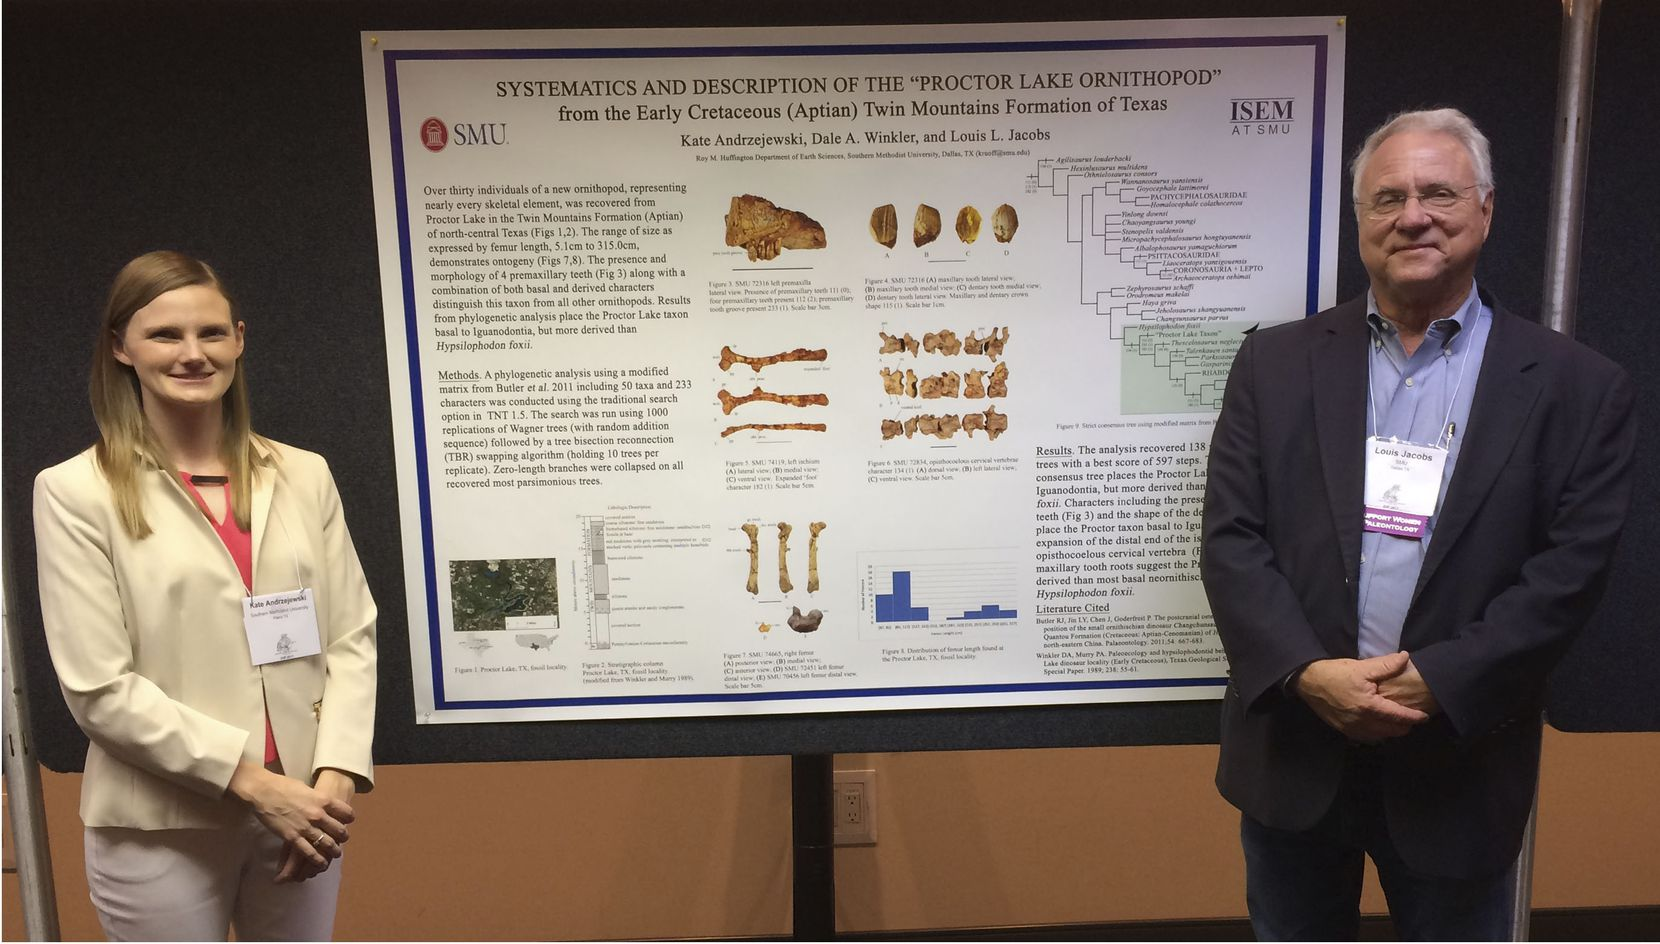 Dr. Kate Andrzejewski (left) and Dr. Louis Jacobs (right) presenting research on C. marri at the Society of Vertebrate Paleontology Annual meeting in Calgary, Alberta in 2017.